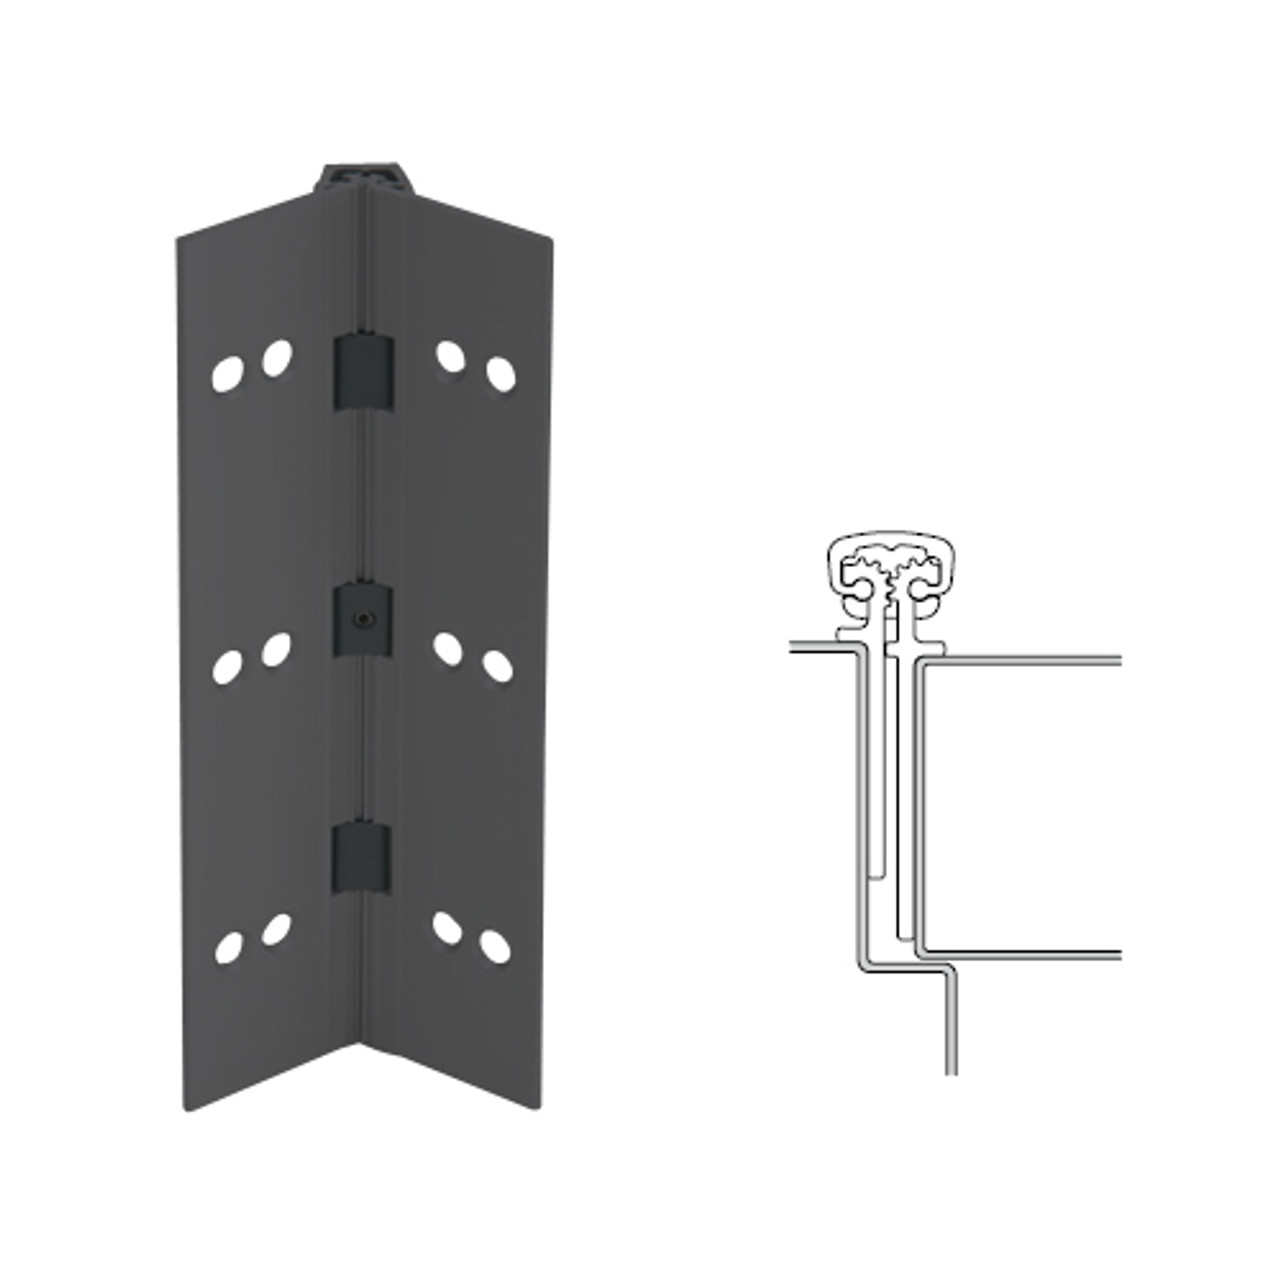 026XY-315AN-95-TFWD IVES Full Mortise Continuous Geared Hinges with Thread Forming Screws in Anodized Black